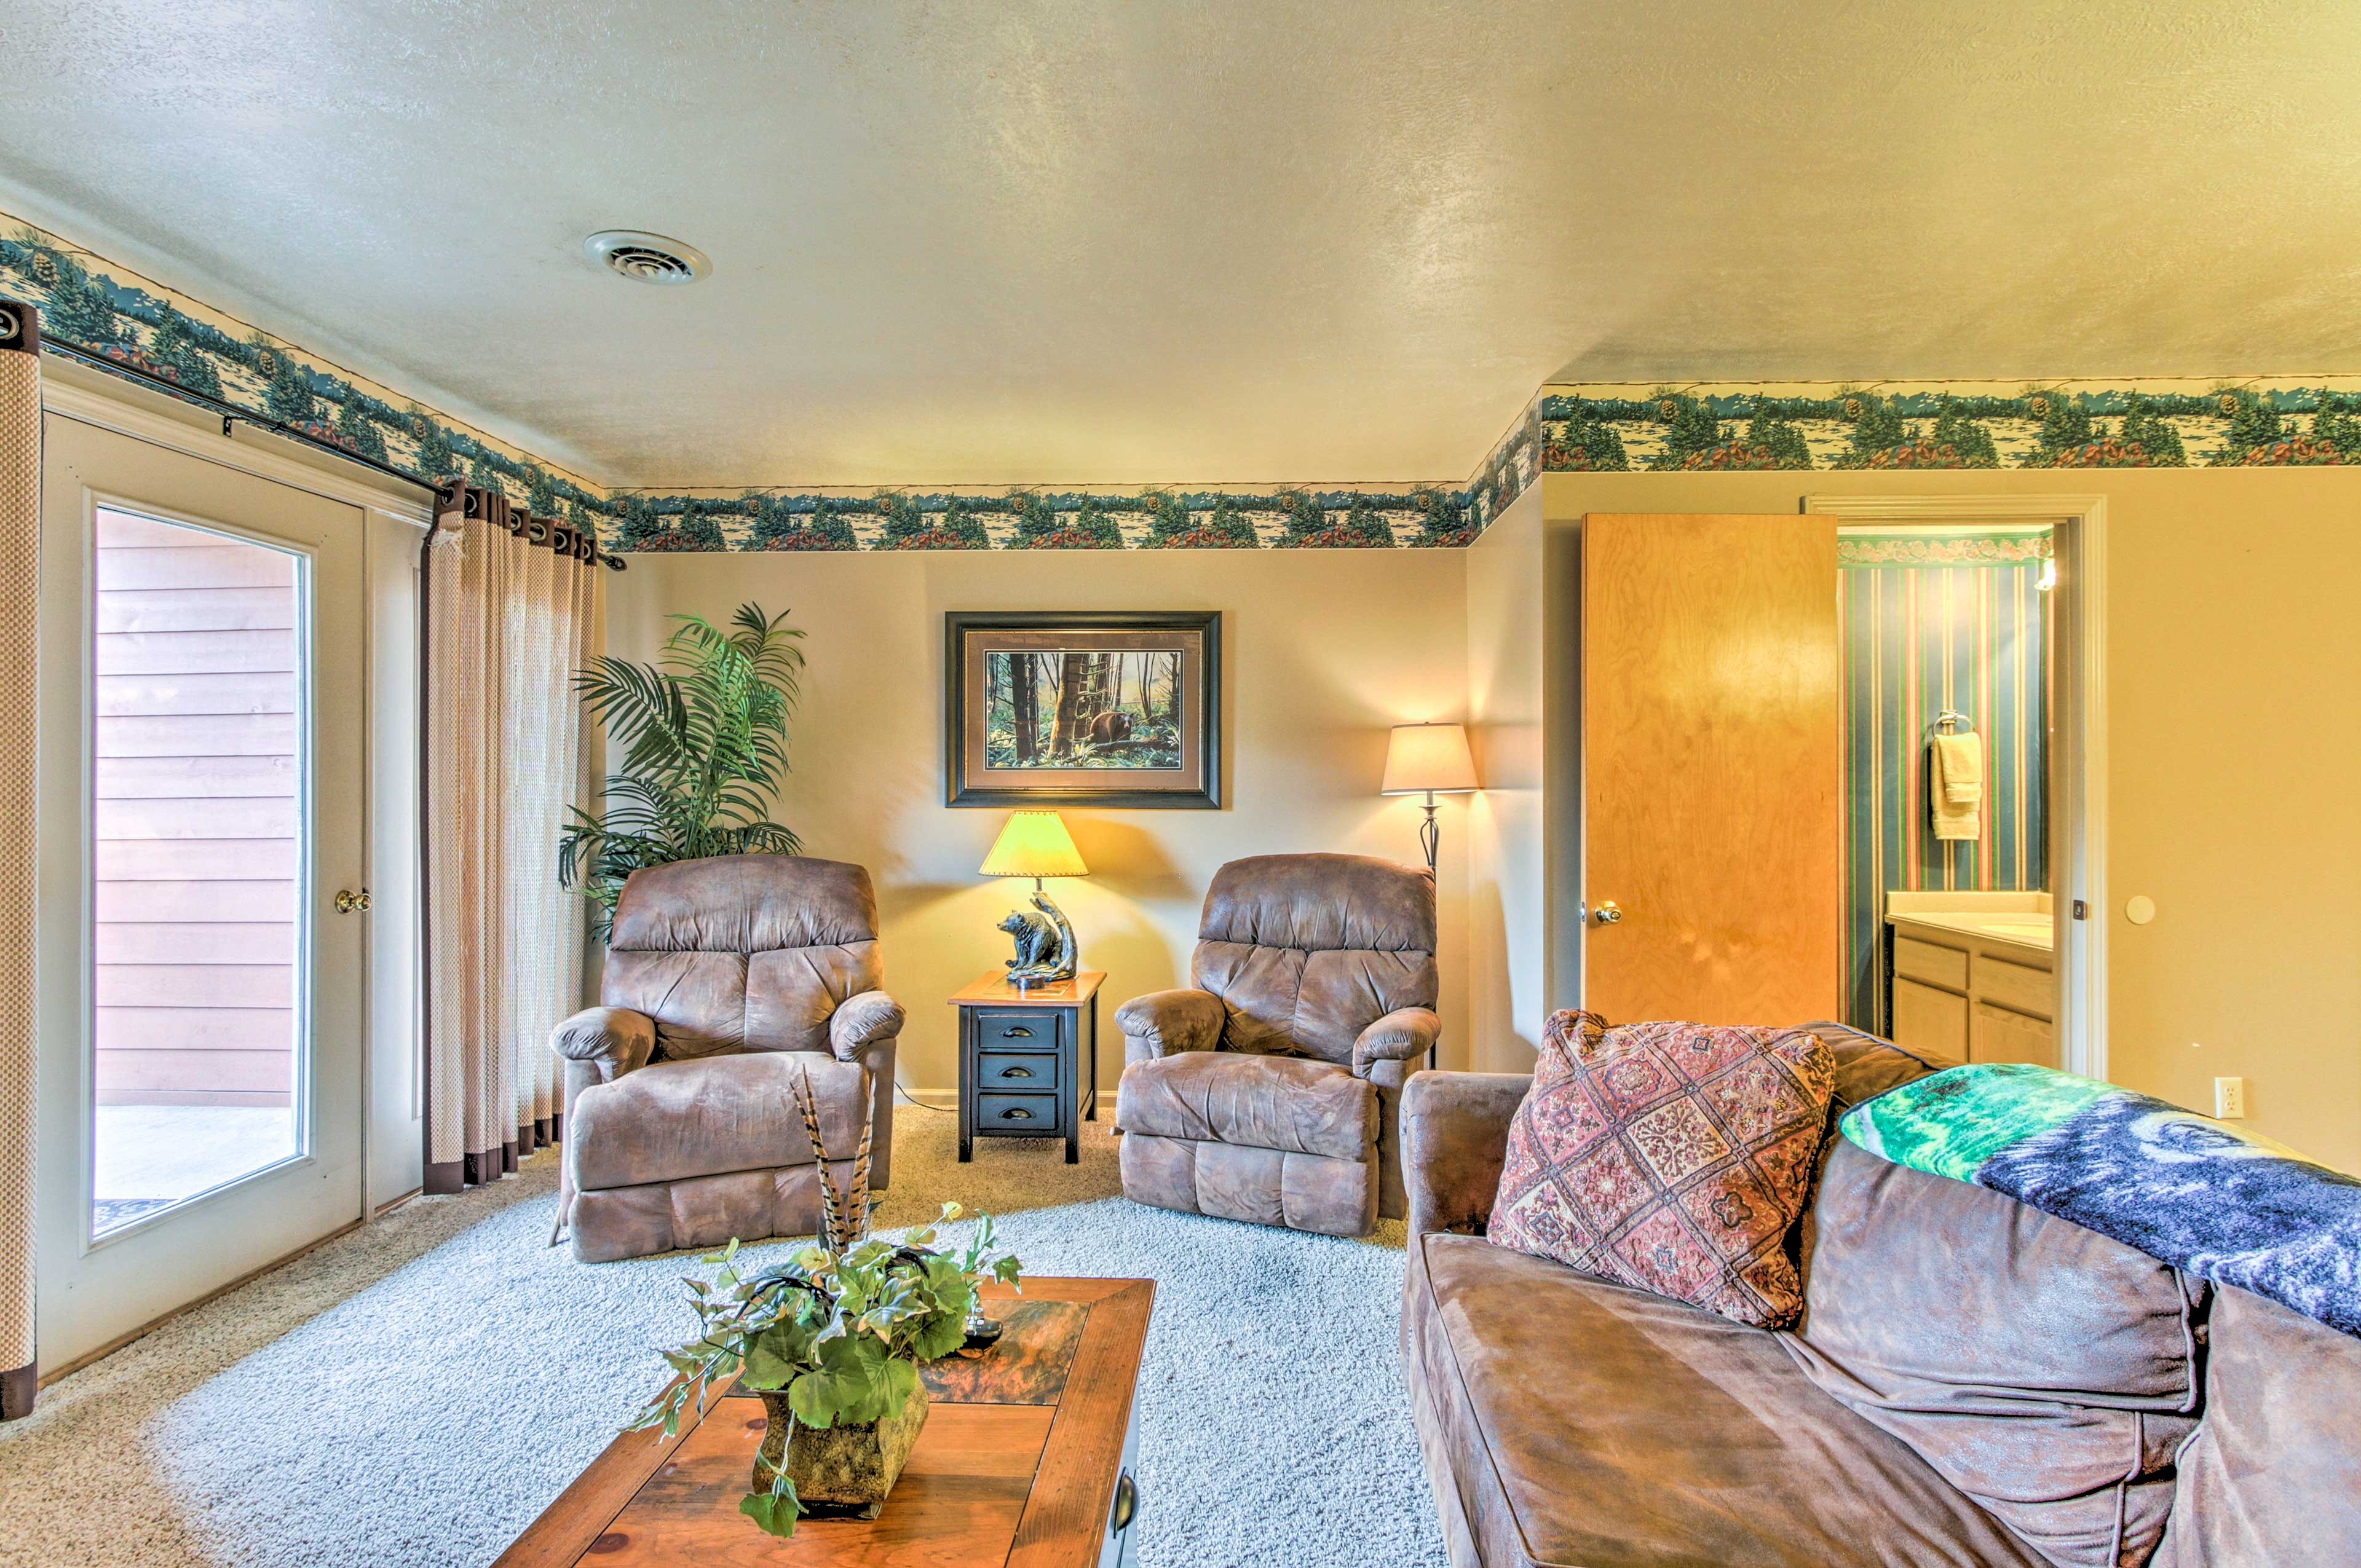 You'll feel warm and cozy with a gas fireplace in the living room.